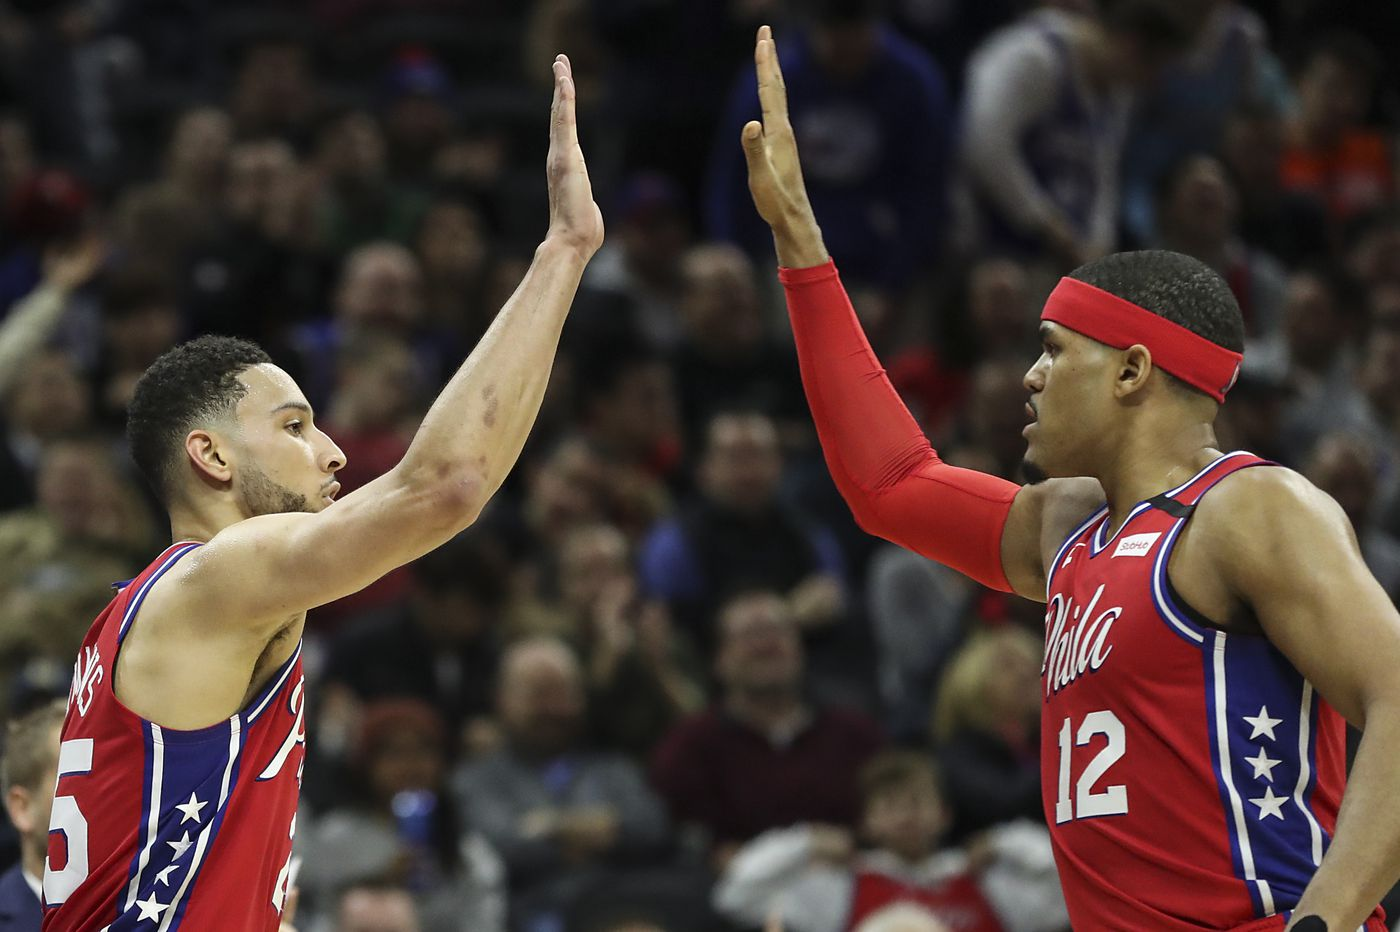 Sixers' Brett Brown expects Ben Simmons to garner his second straight NBA All-Star selection